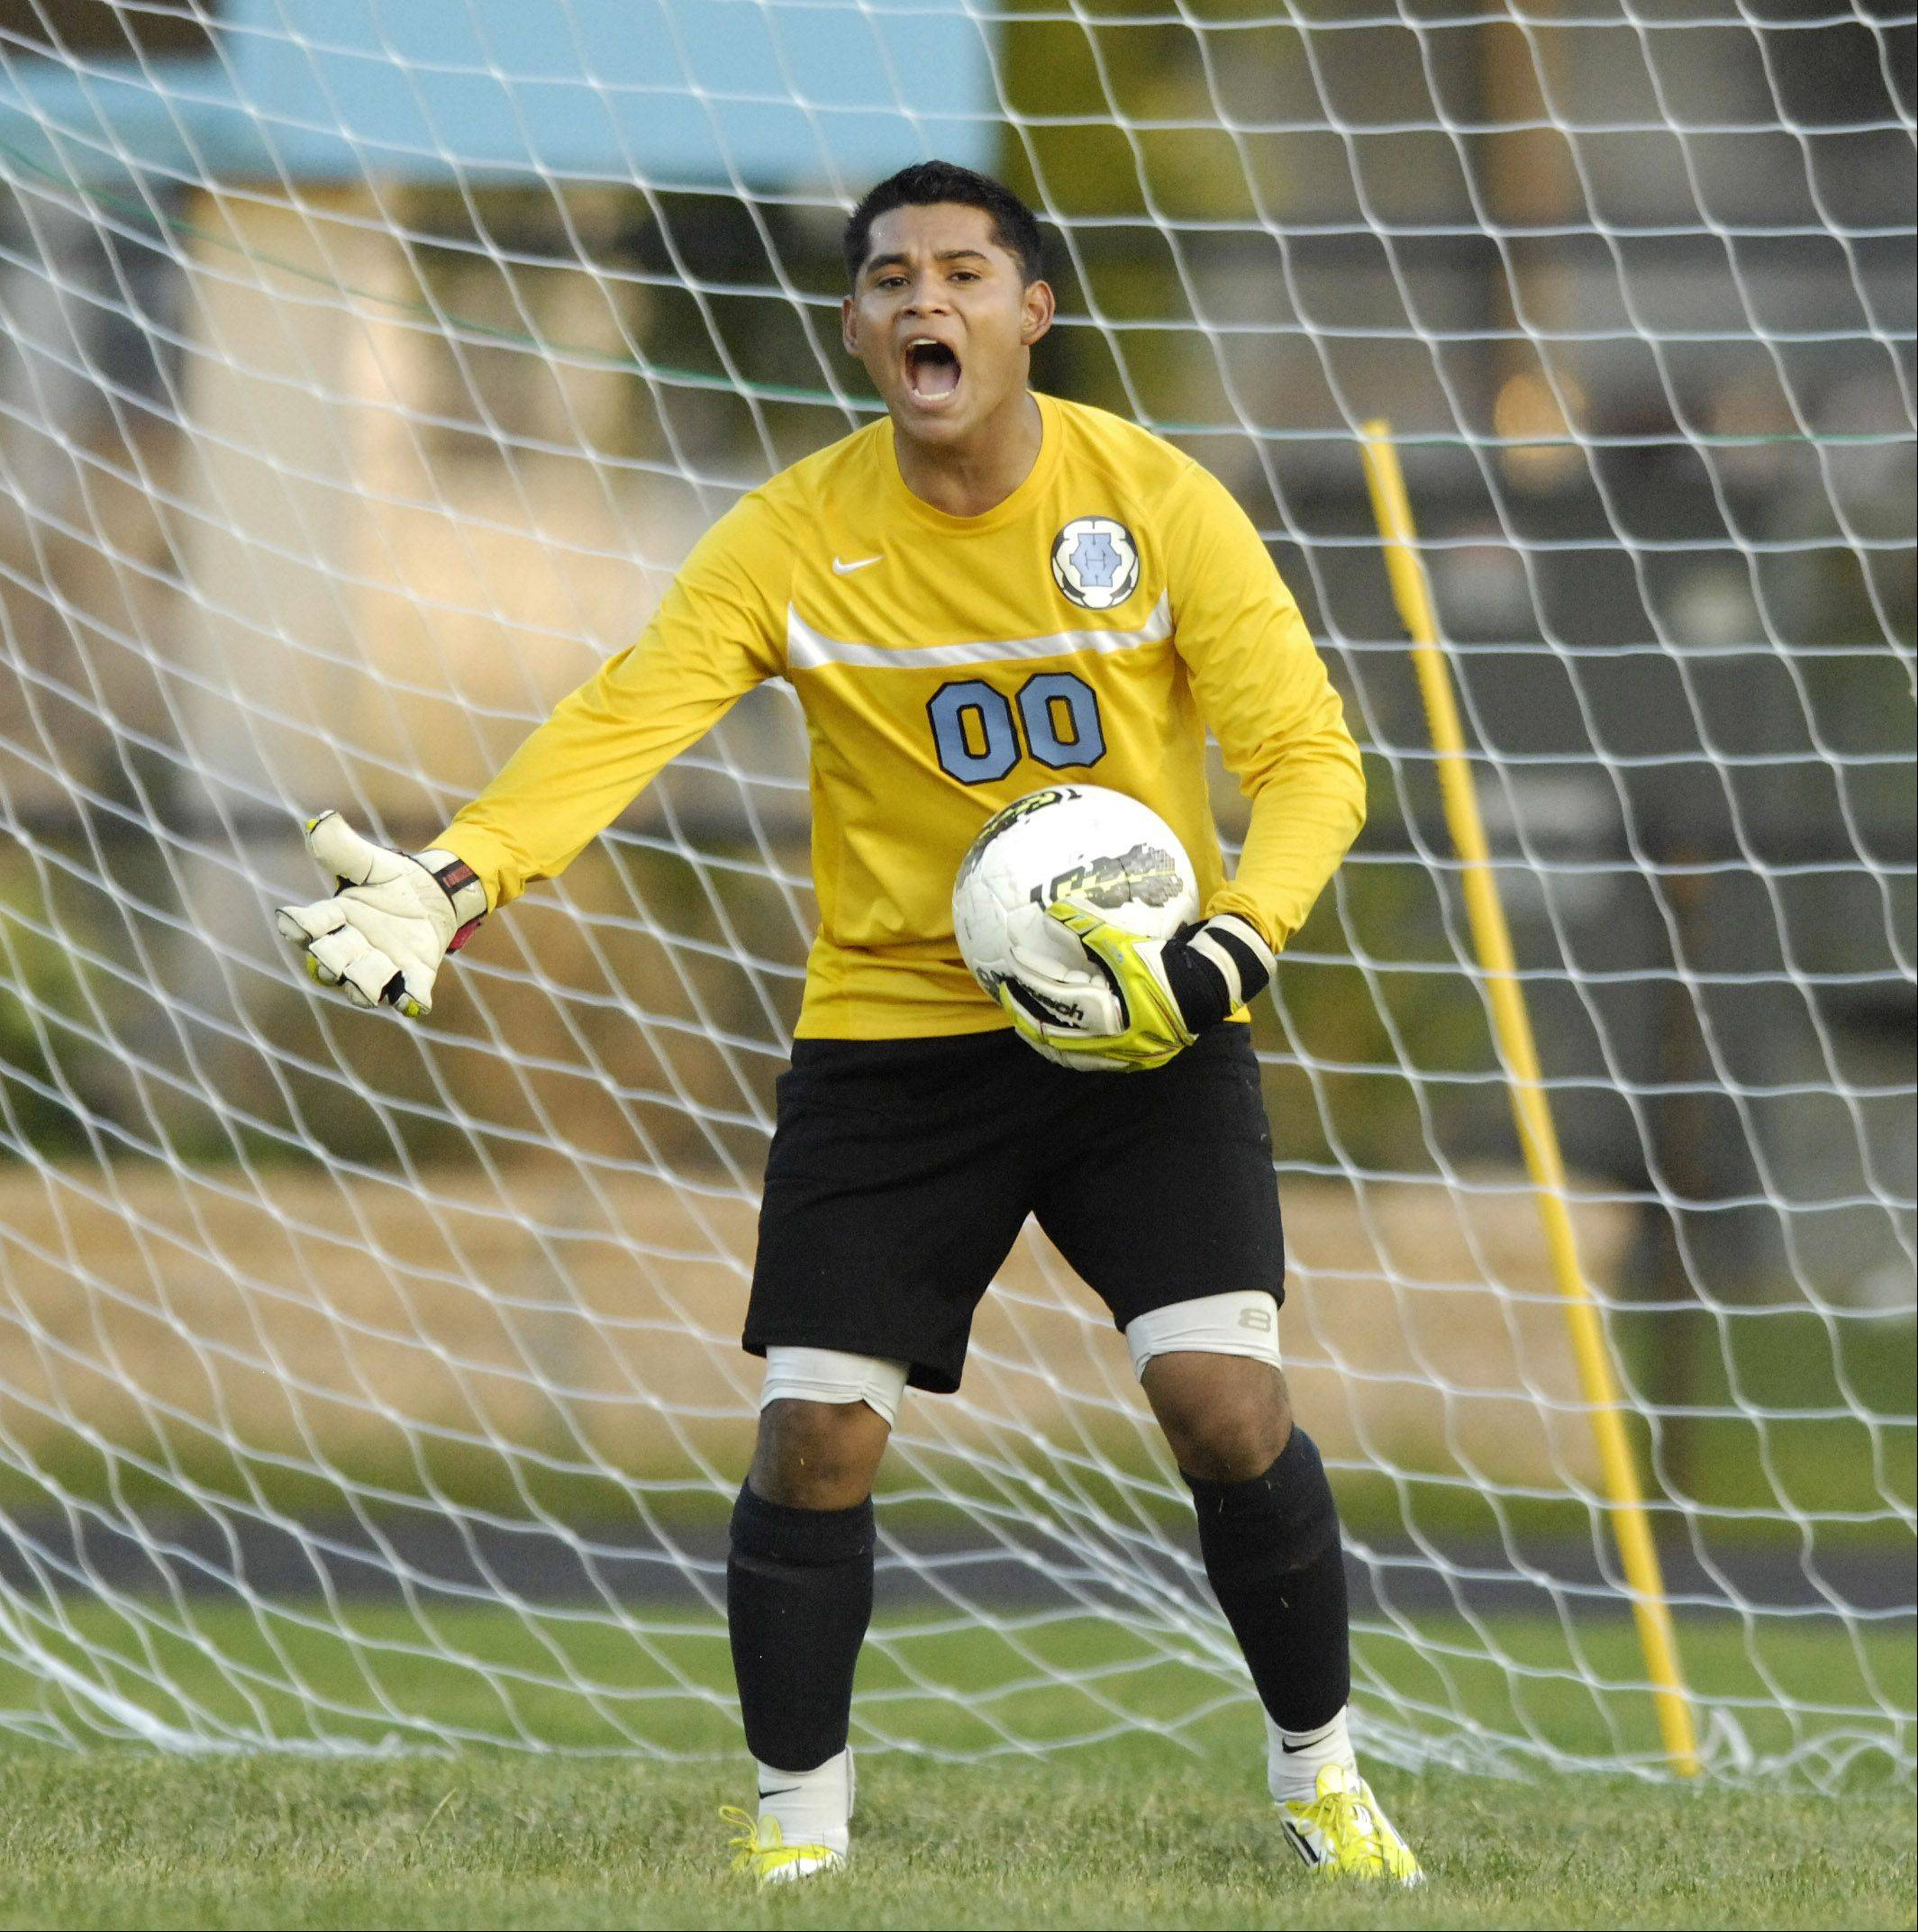 Maine West goal keeper Jecsan Torres takes charge during a game against Leyden.